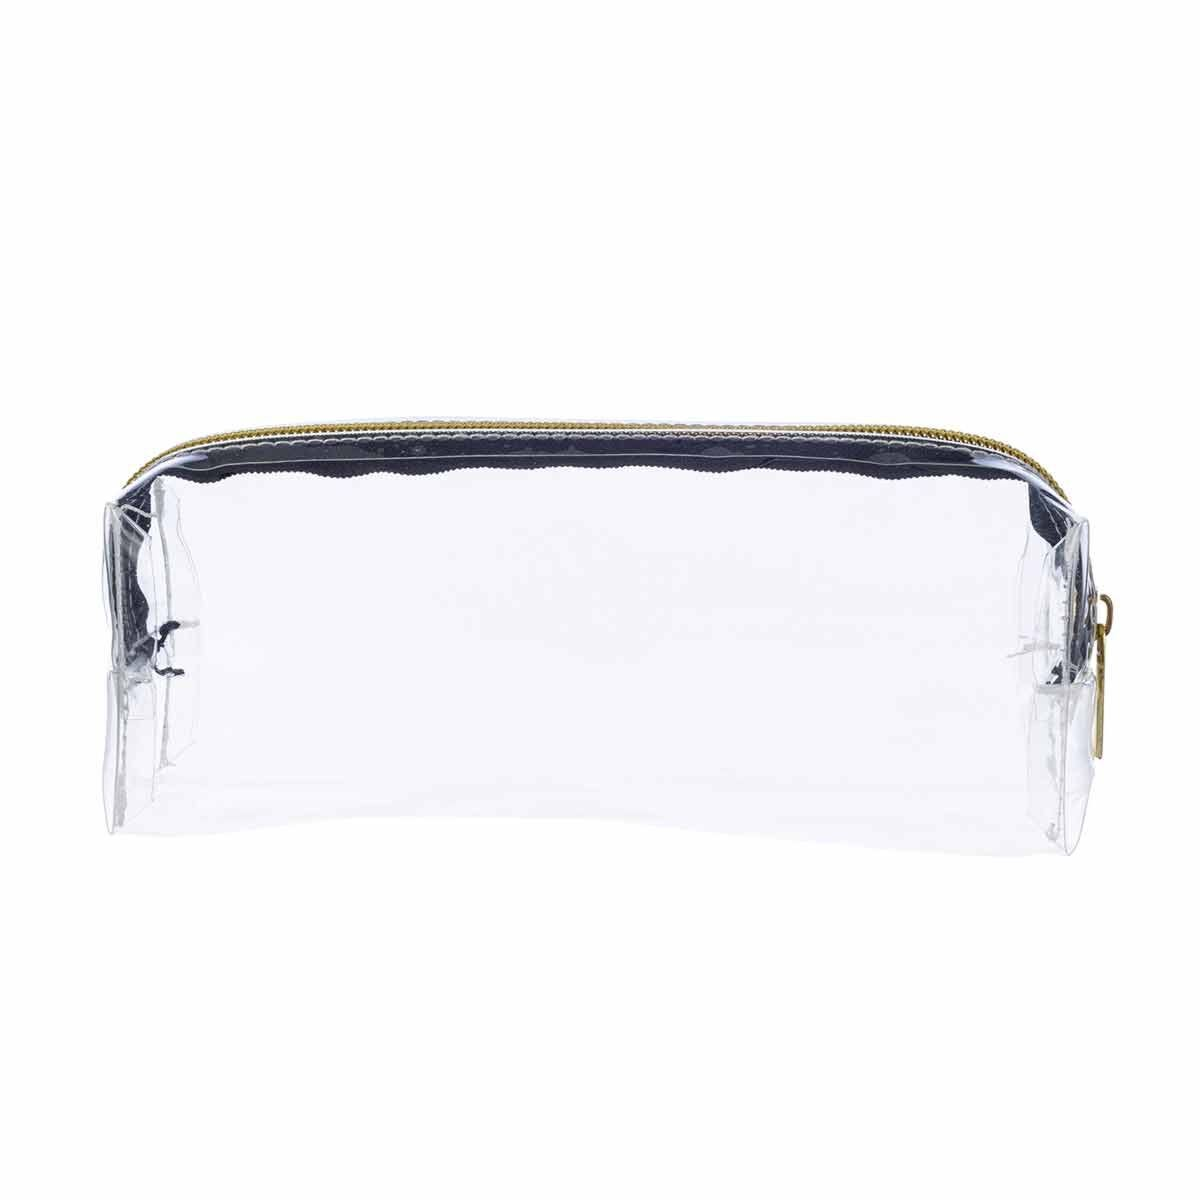 Clear Wedge Pencil Case with Gold Zip